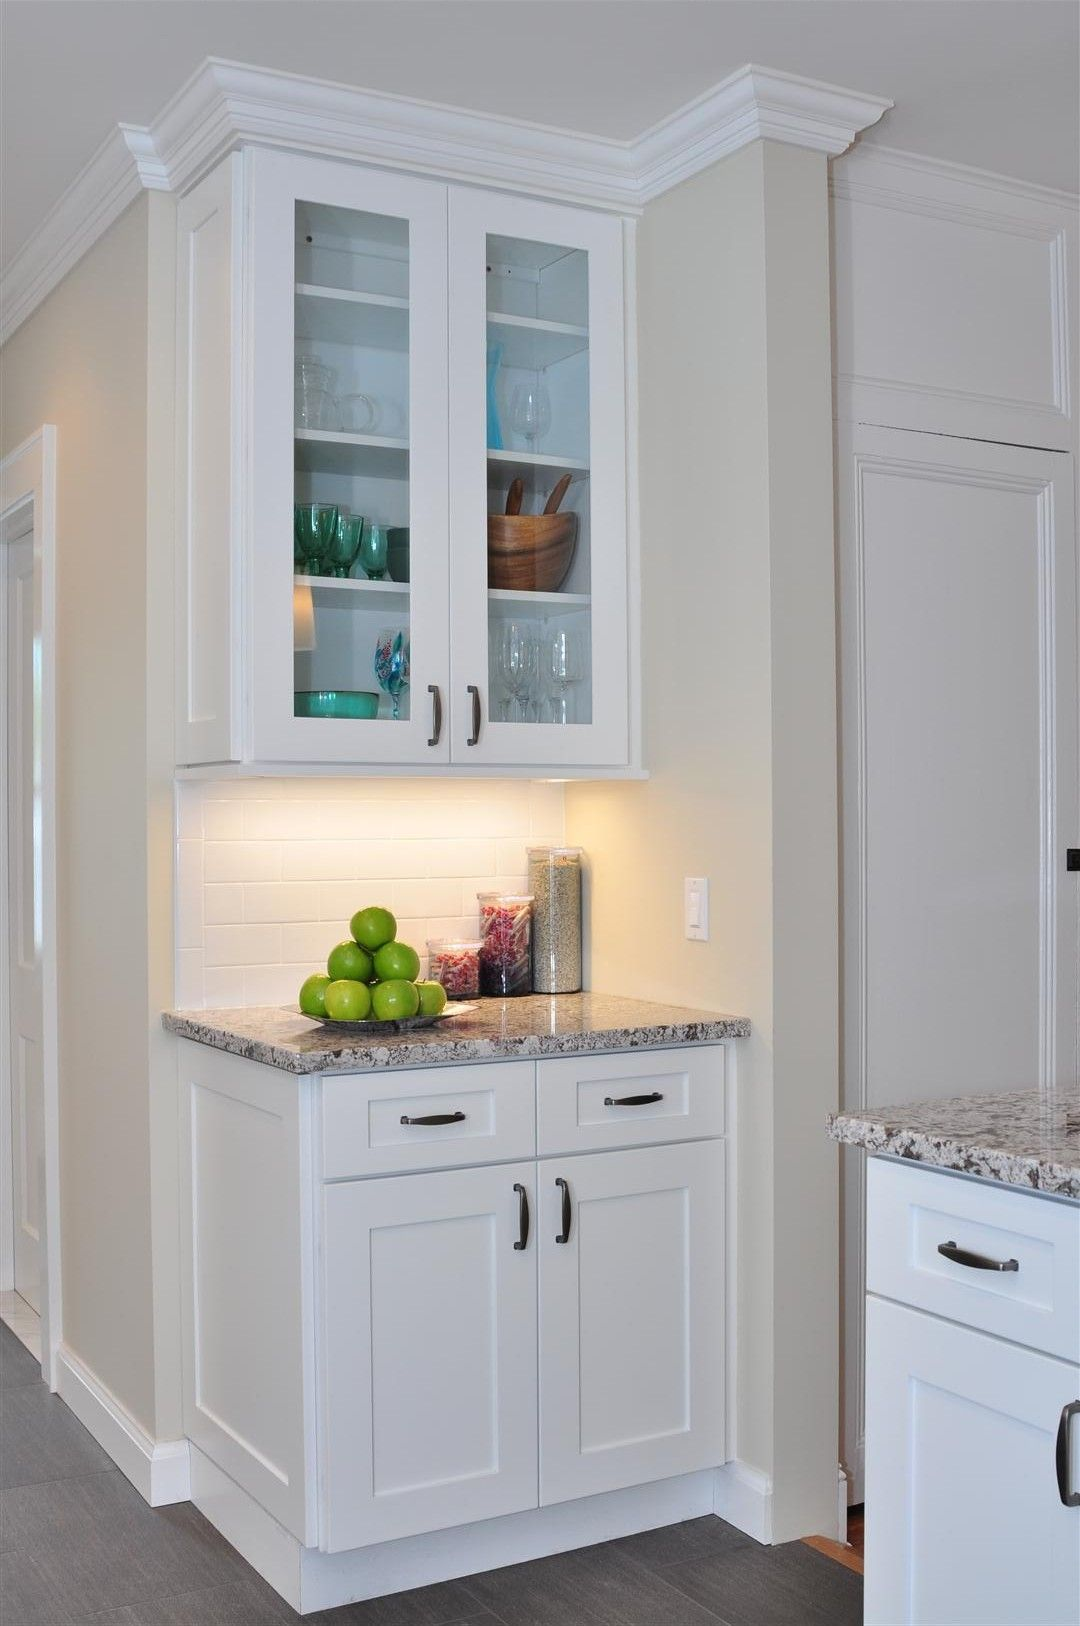 Ice White Shaker Kitchen White Shaker Kitchen Shaker Style Kitchen Cabinets Kitchen Cabinet Styles